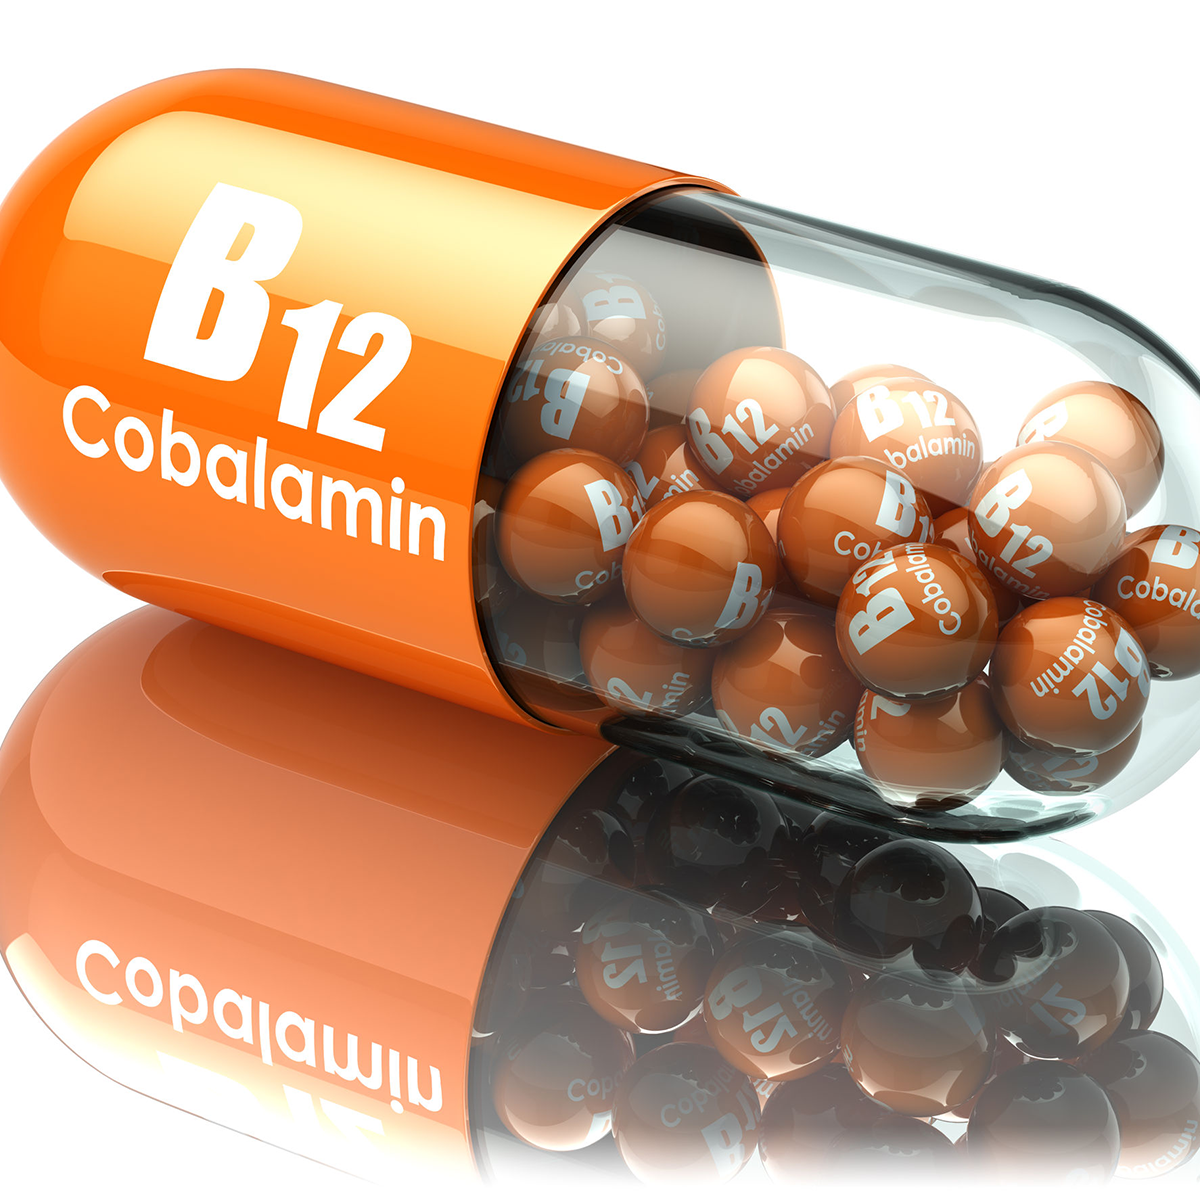 Picture of example B12 Capsule